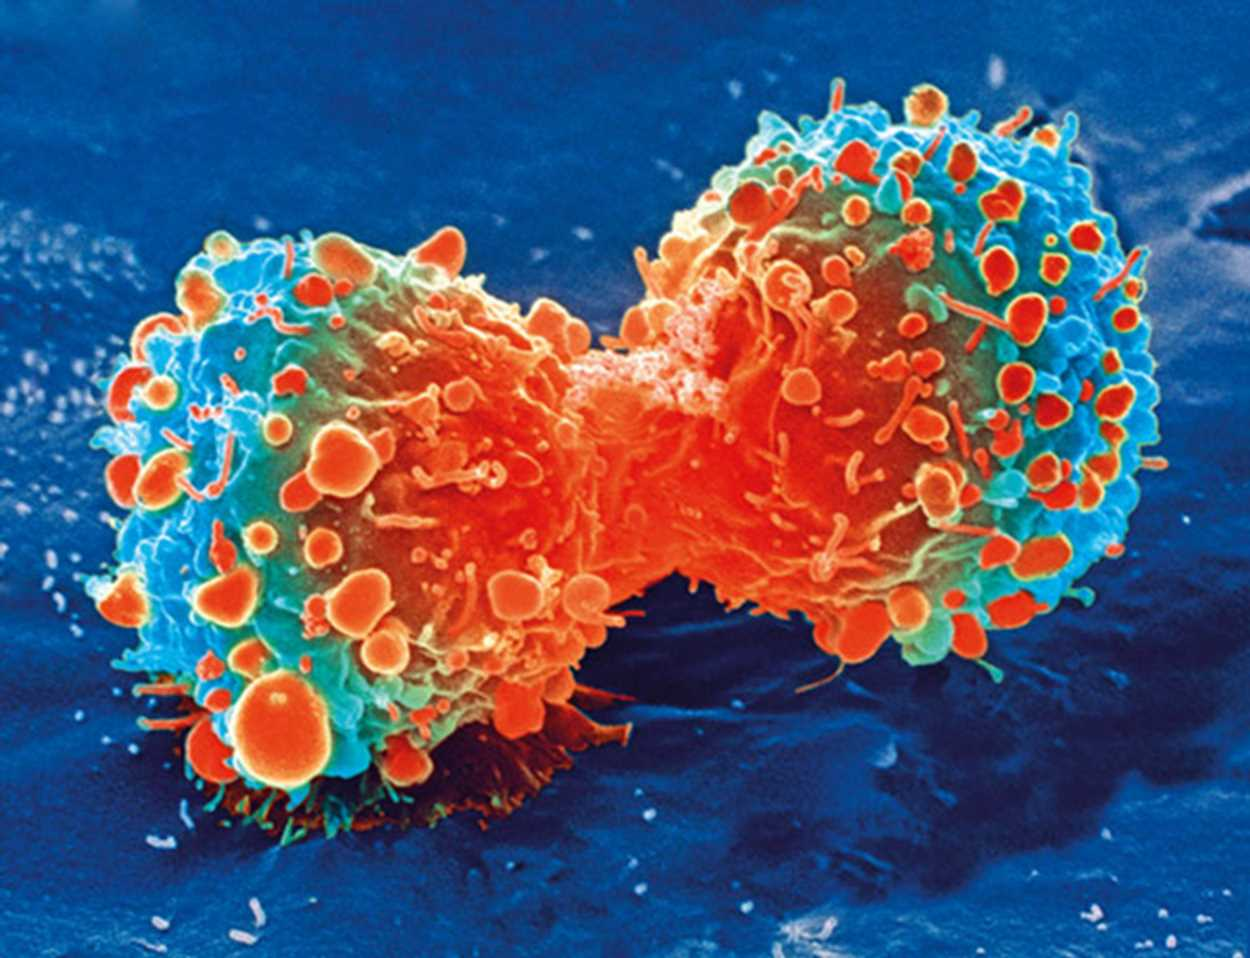 Encouraging normal liver cells to fight cancer